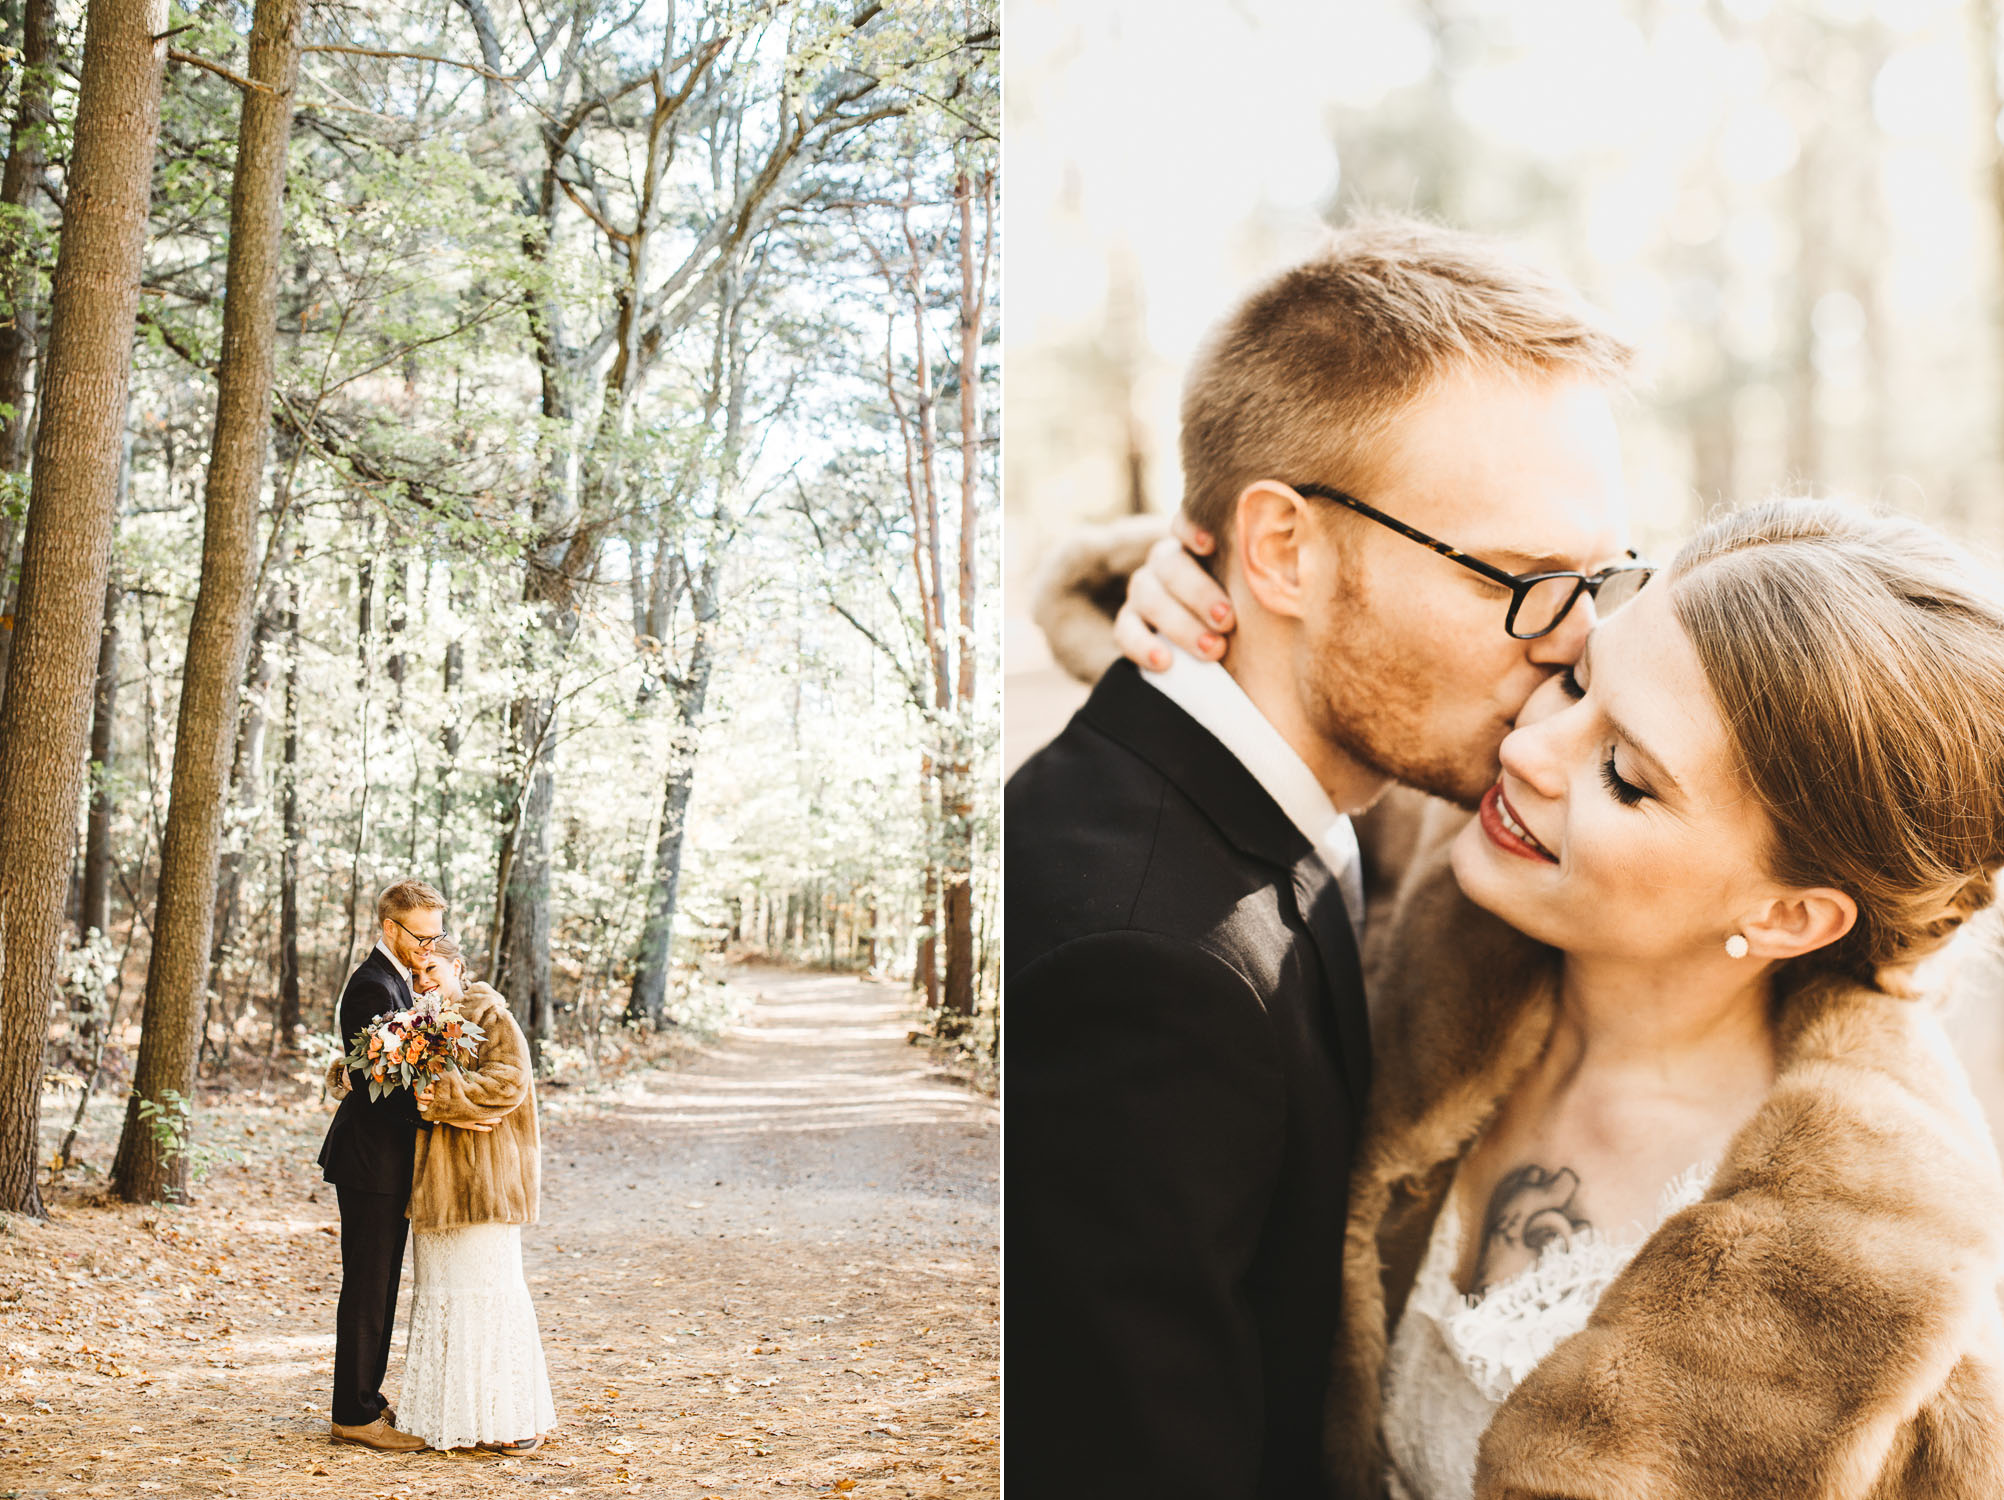 Boston-Elopement-Photographer-Forest-Woodsy-Film-Artistic-Trees-Autumn-09 copy.jpg